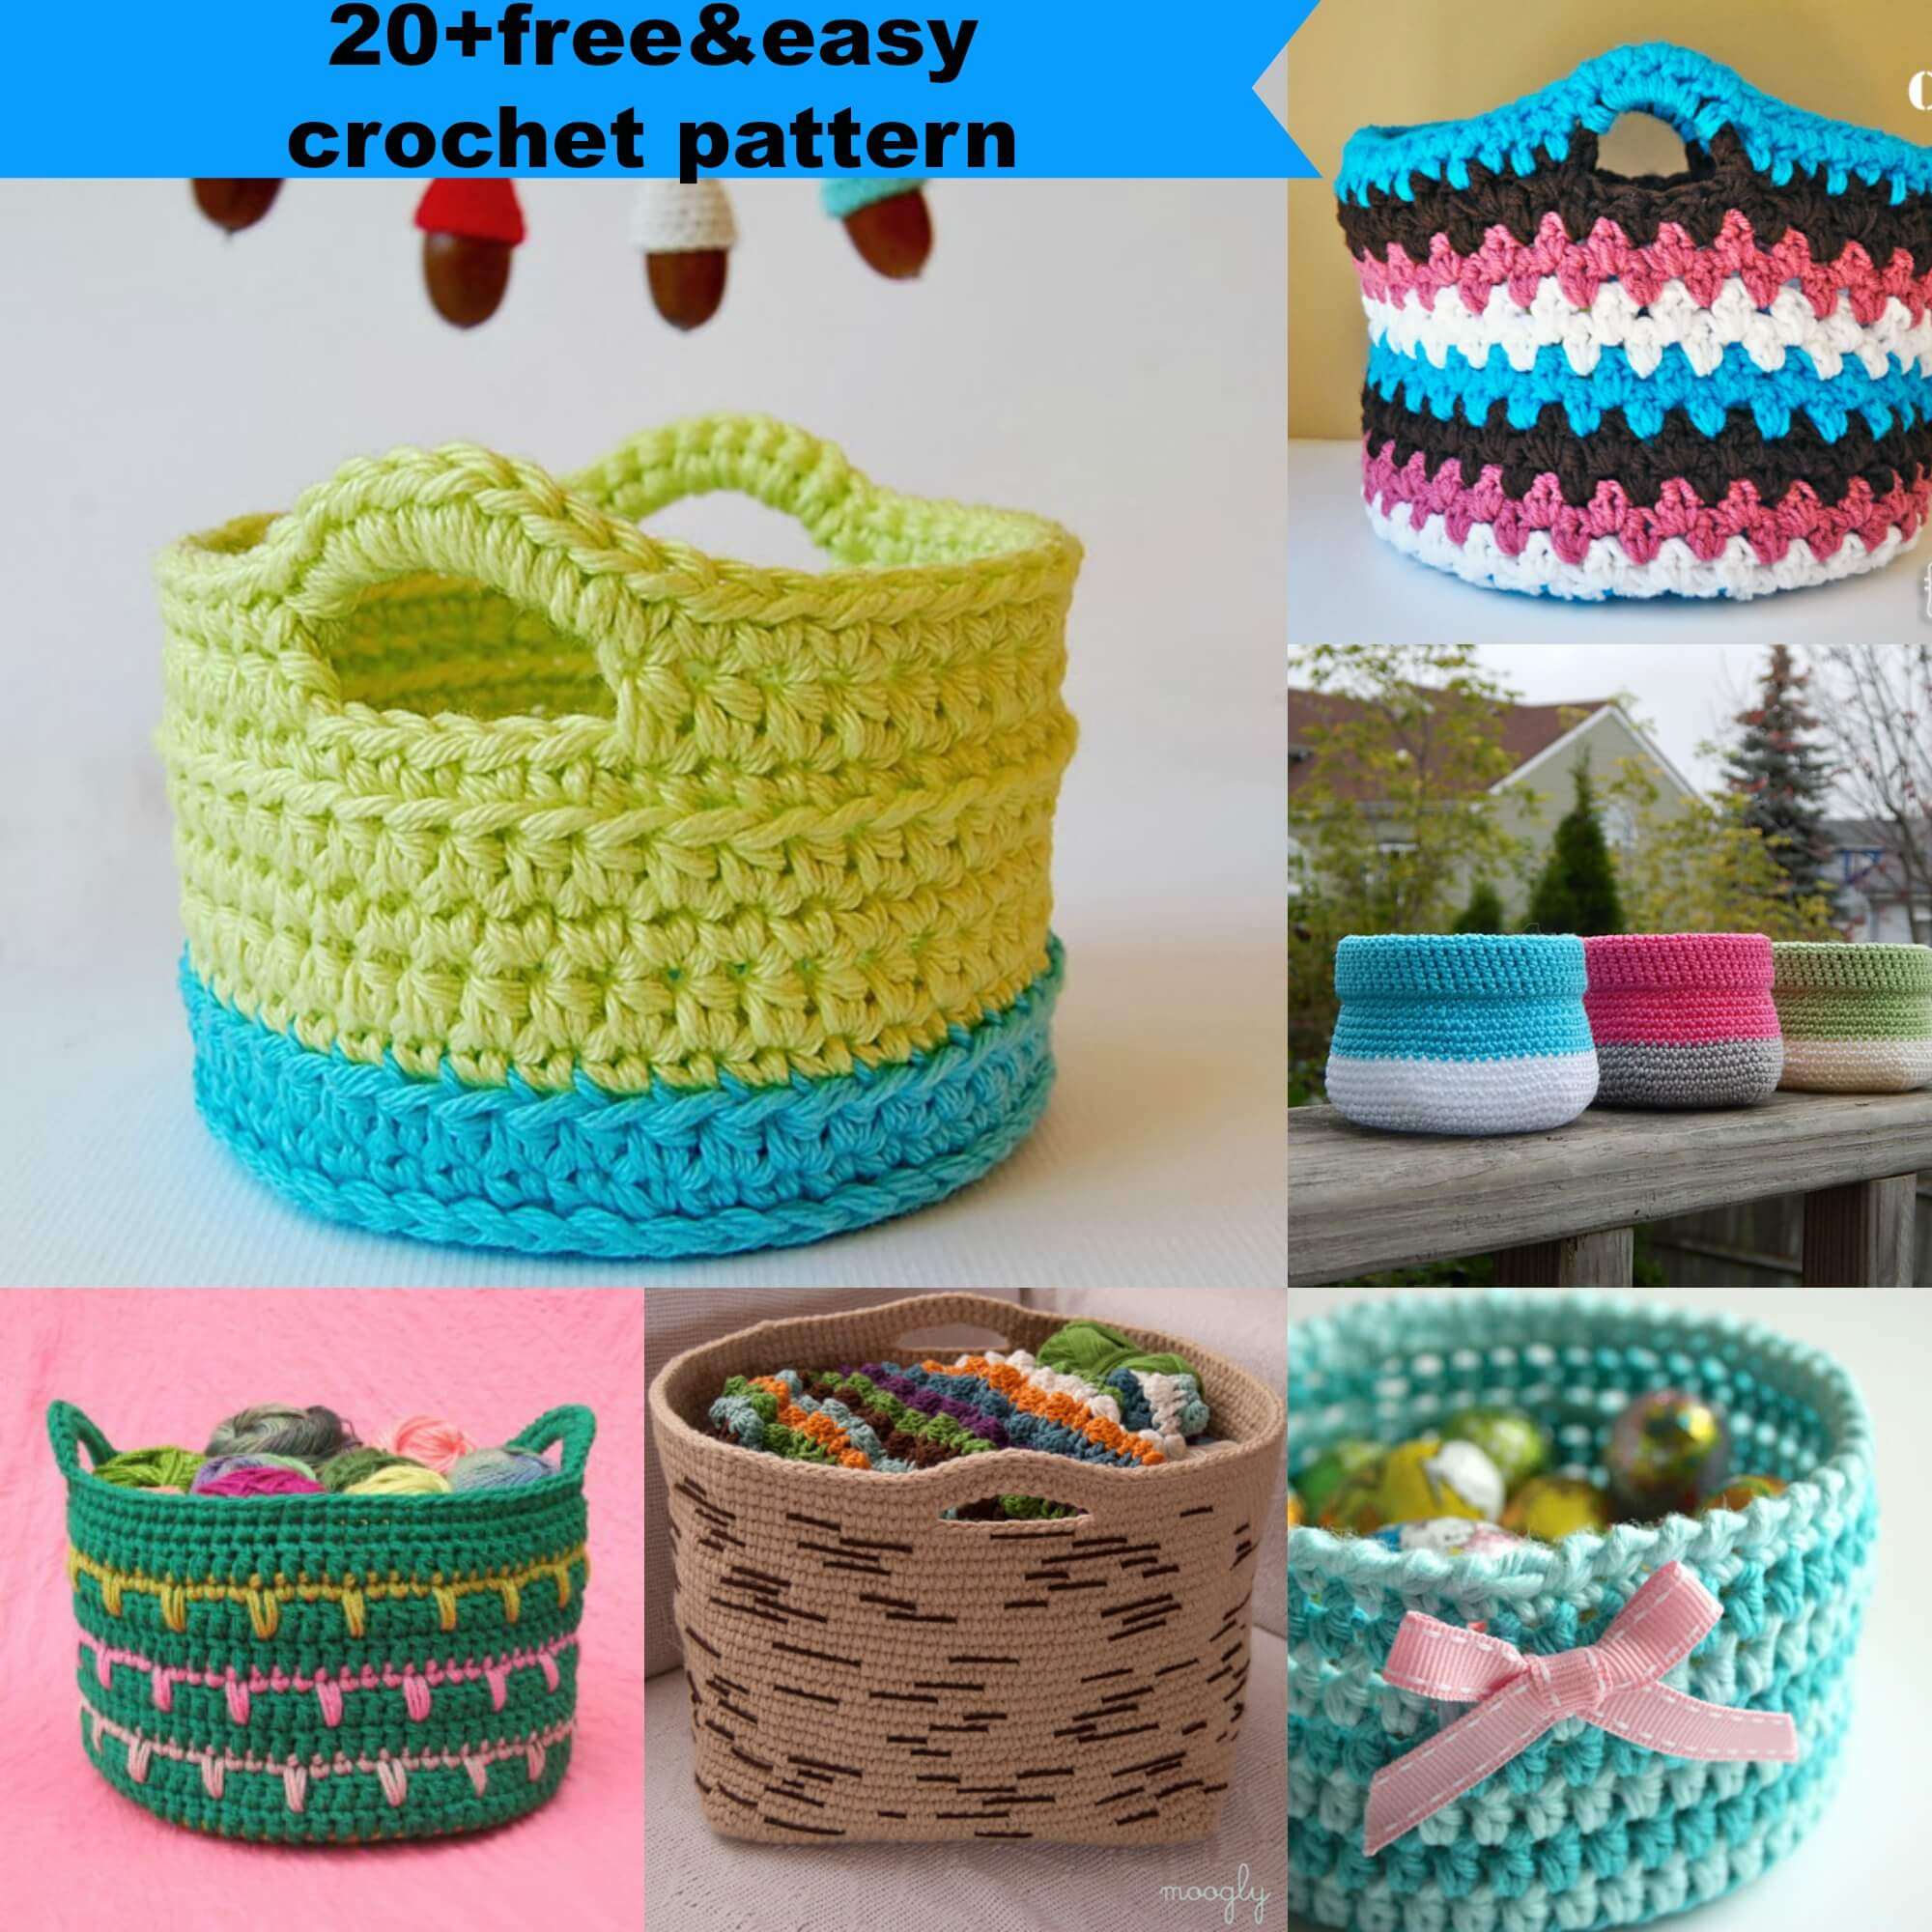 20+free&easy crochet pattern by jennyandteddy